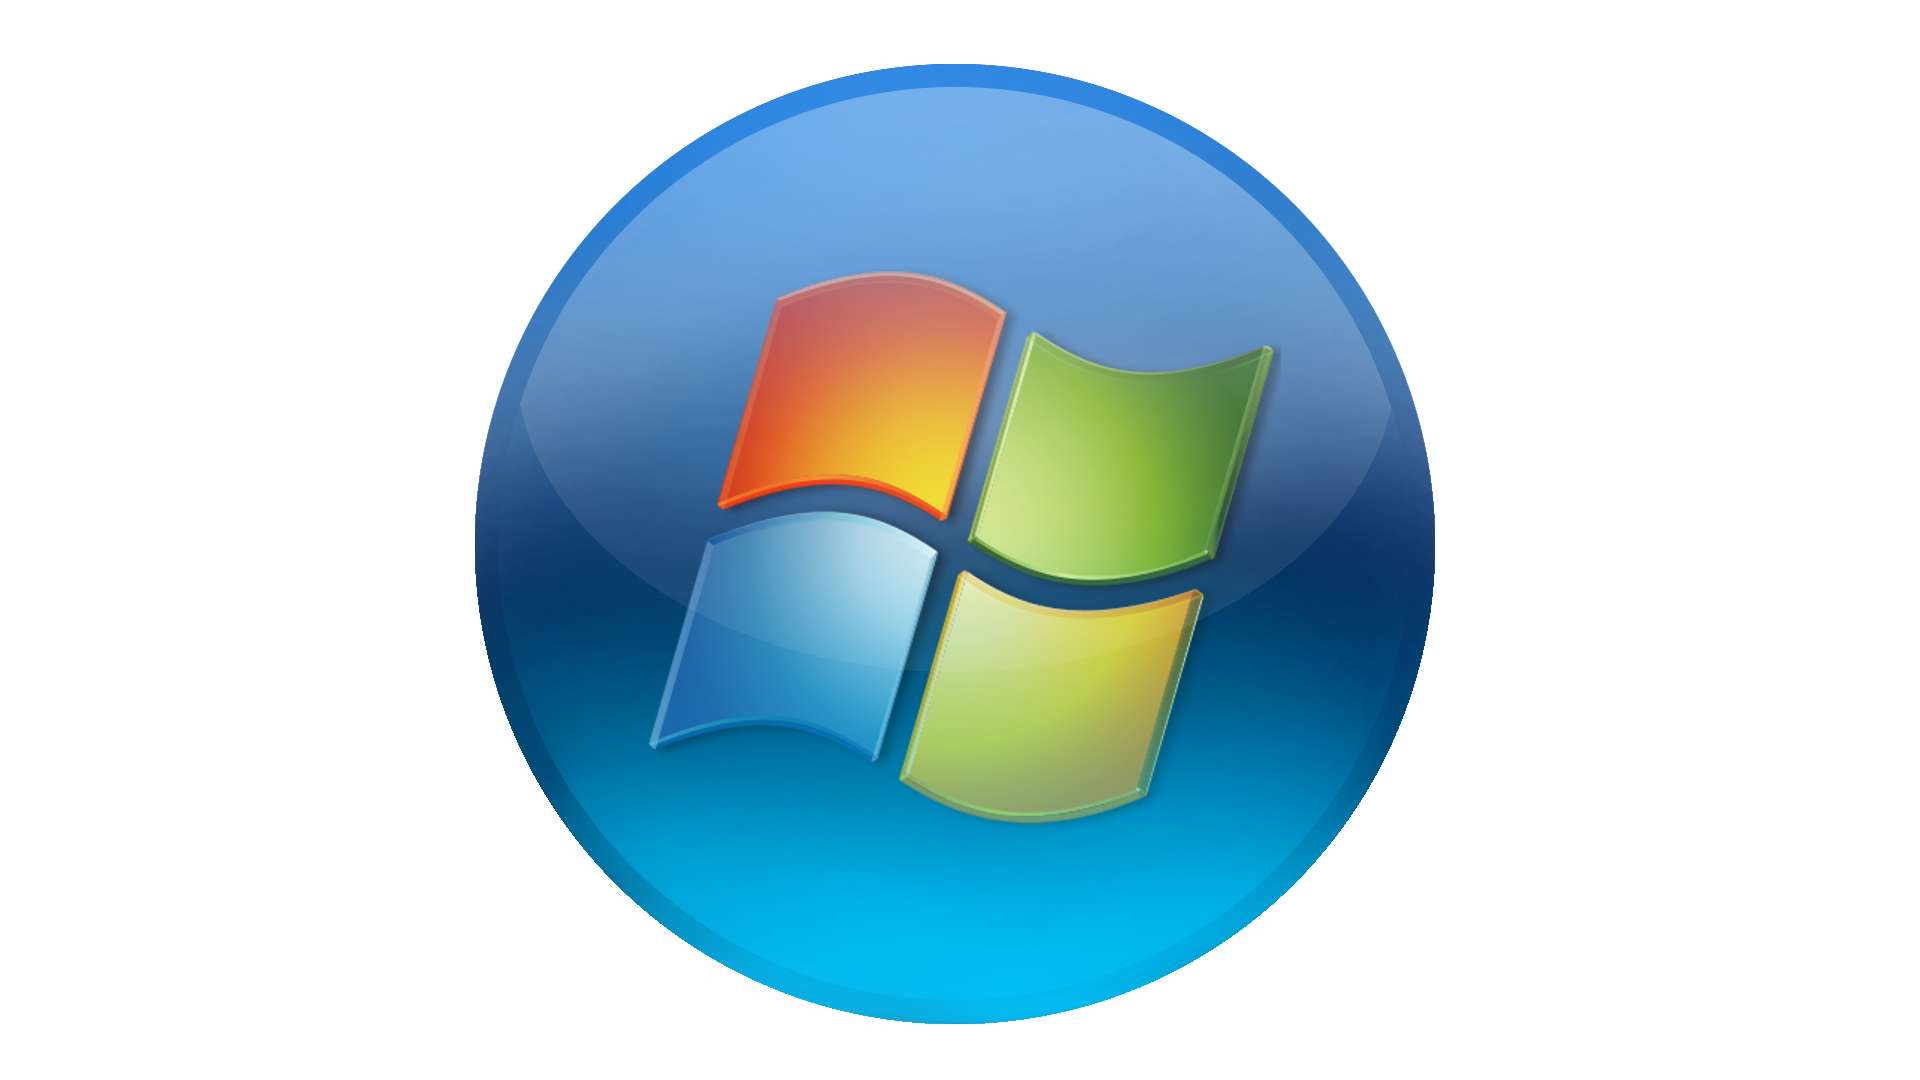 Windows 7 logo transparent png. Vista recreation hd by